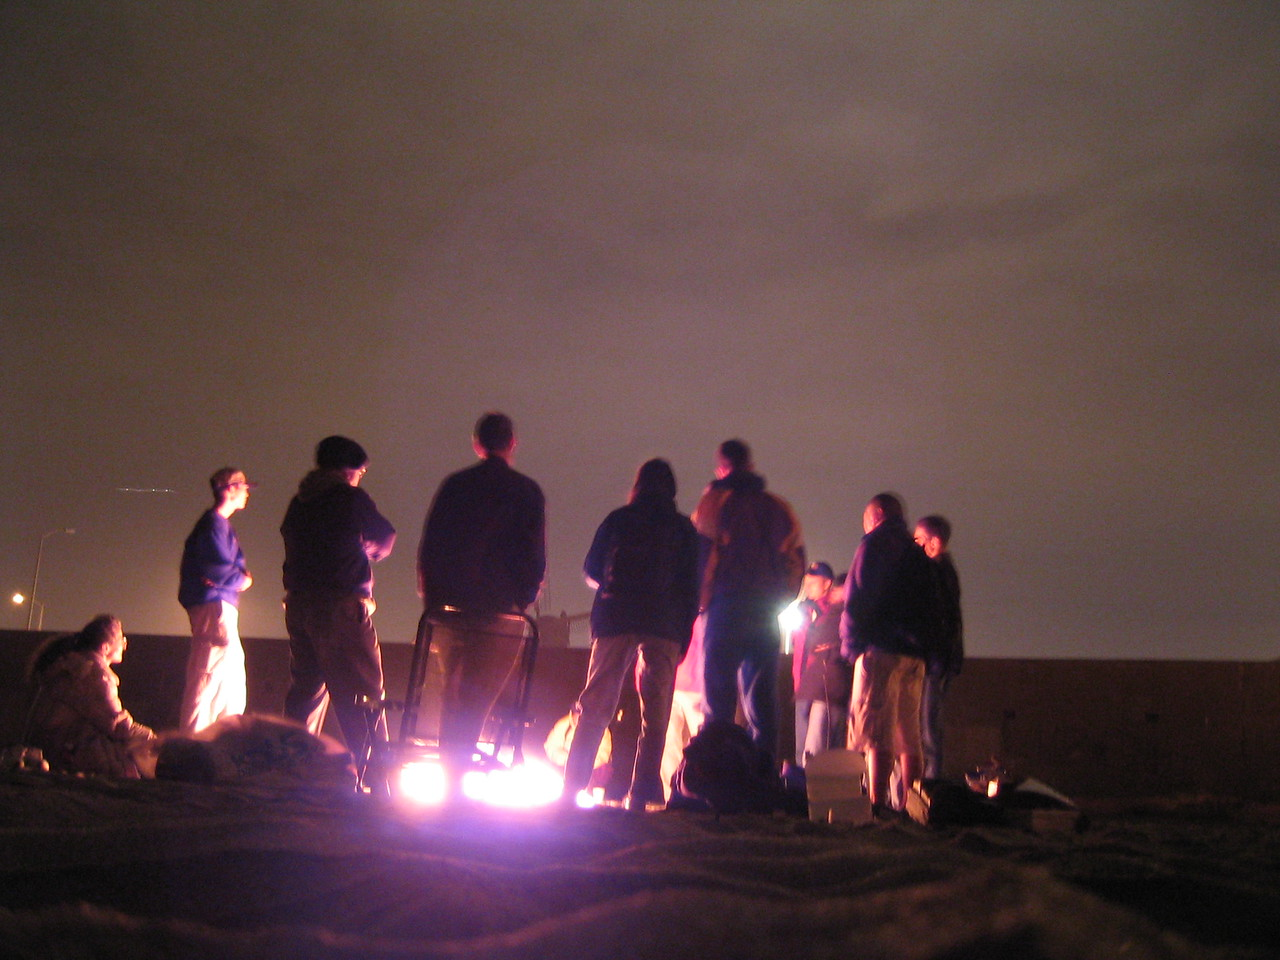 Saying so around fire - Group back overexposed